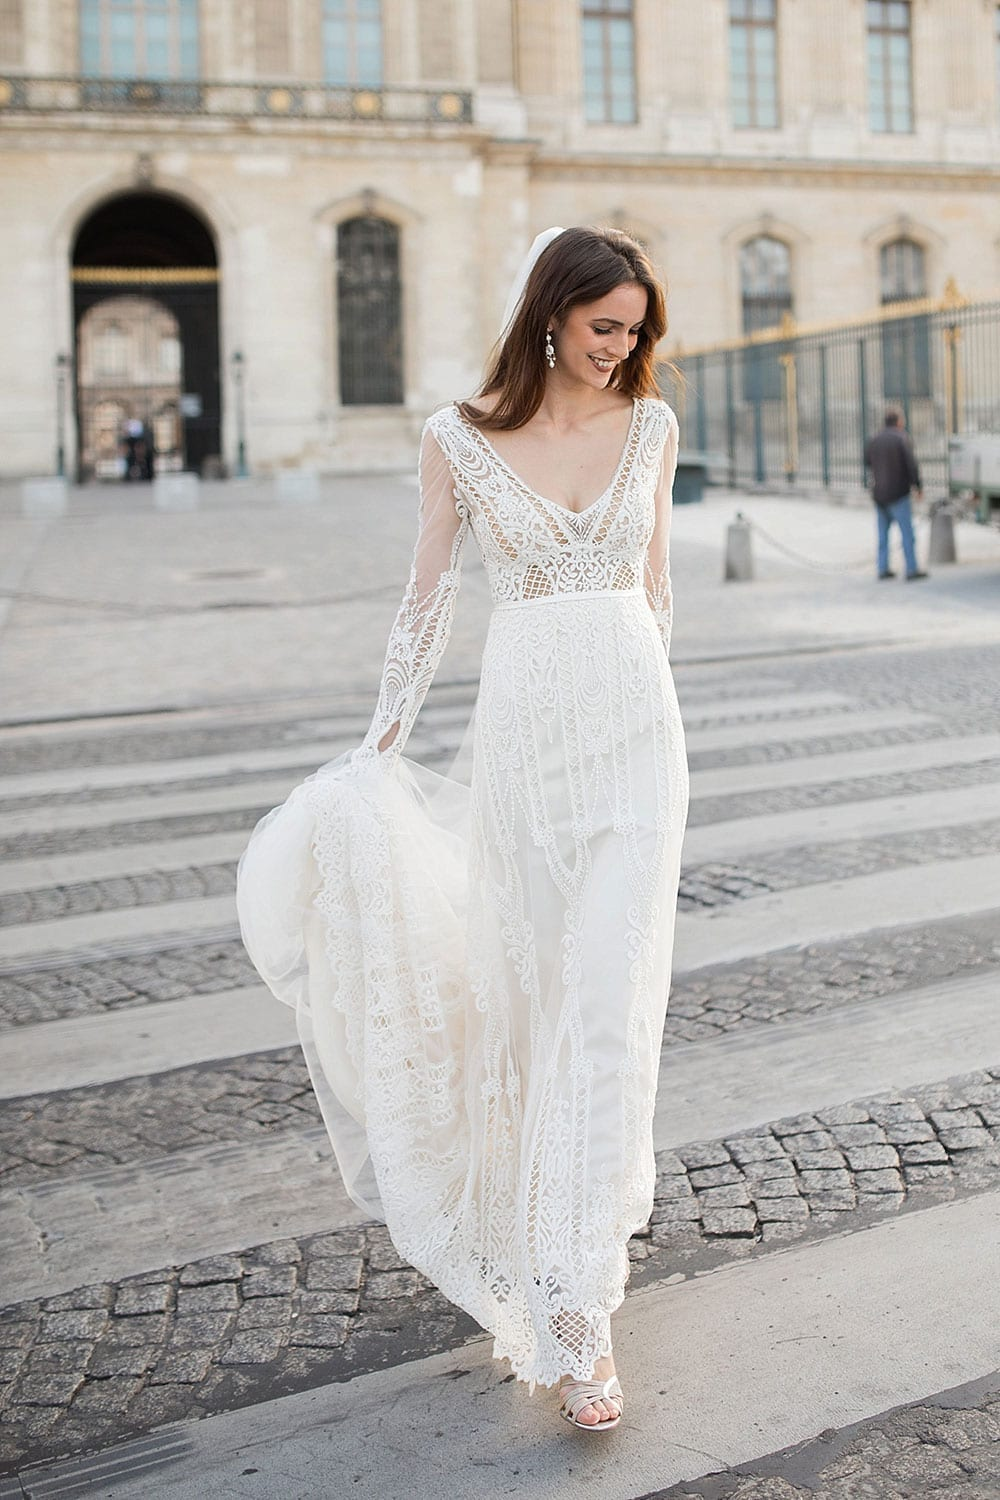 Model wearing Vinka Design Briar Wedding Dress, an Embroidered Lace Wedding Gown in Paris